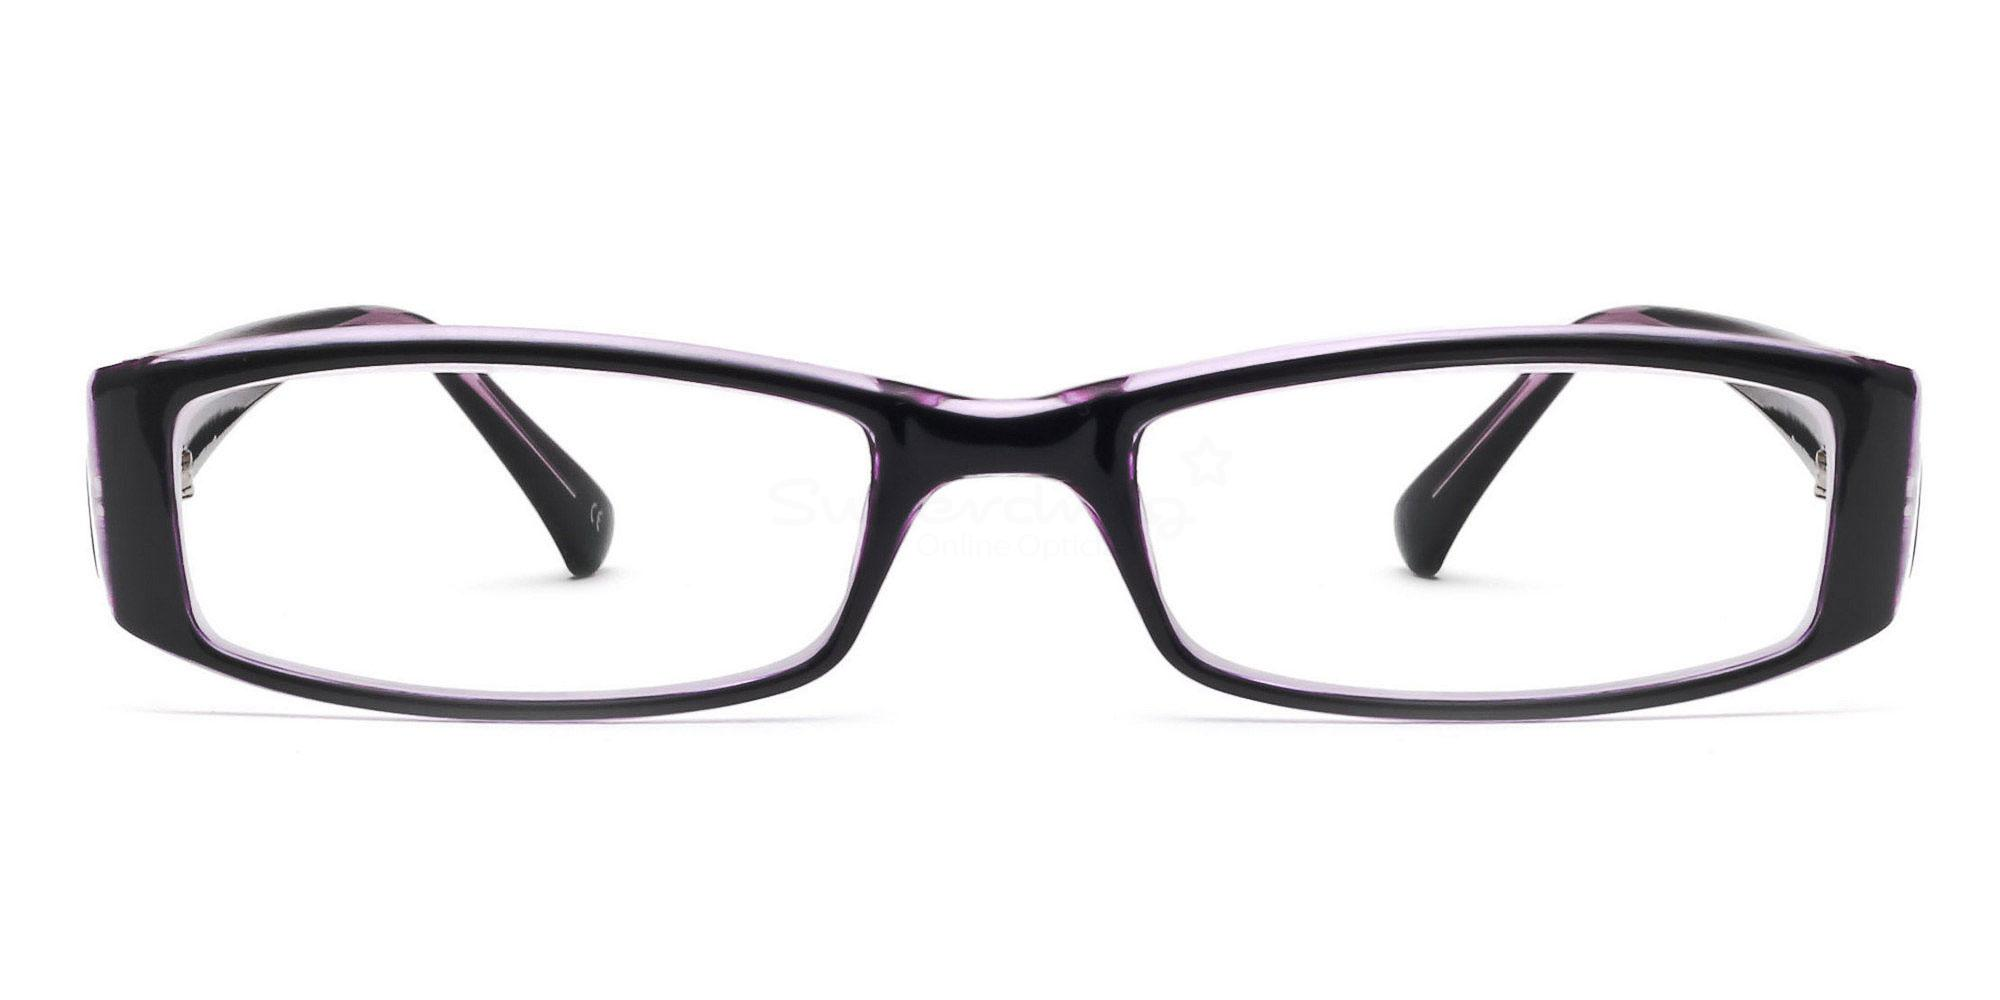 C44 P2251 - Black and Purple Glasses, Helium